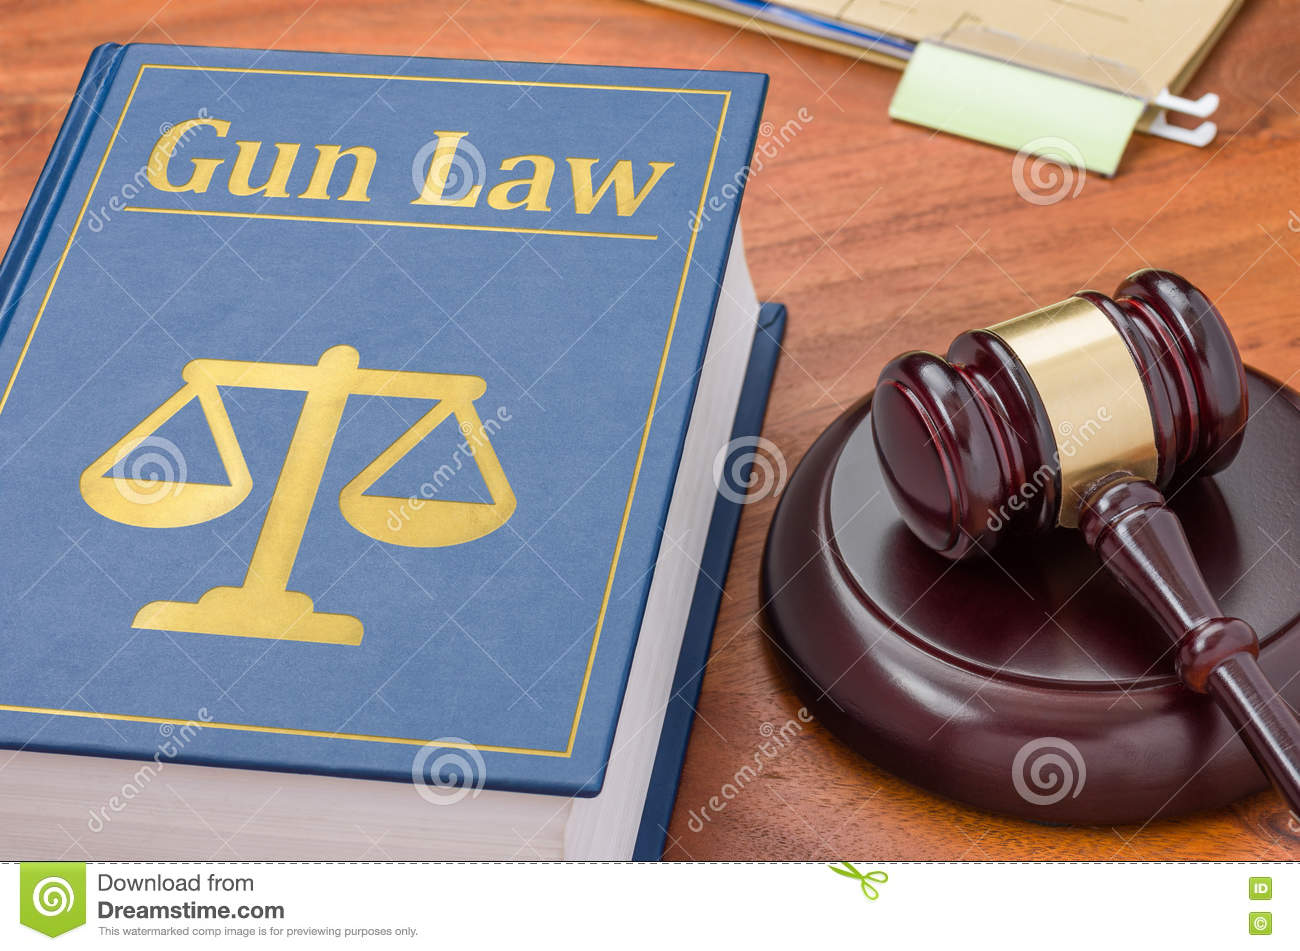 Law book with a gavel - Gun law